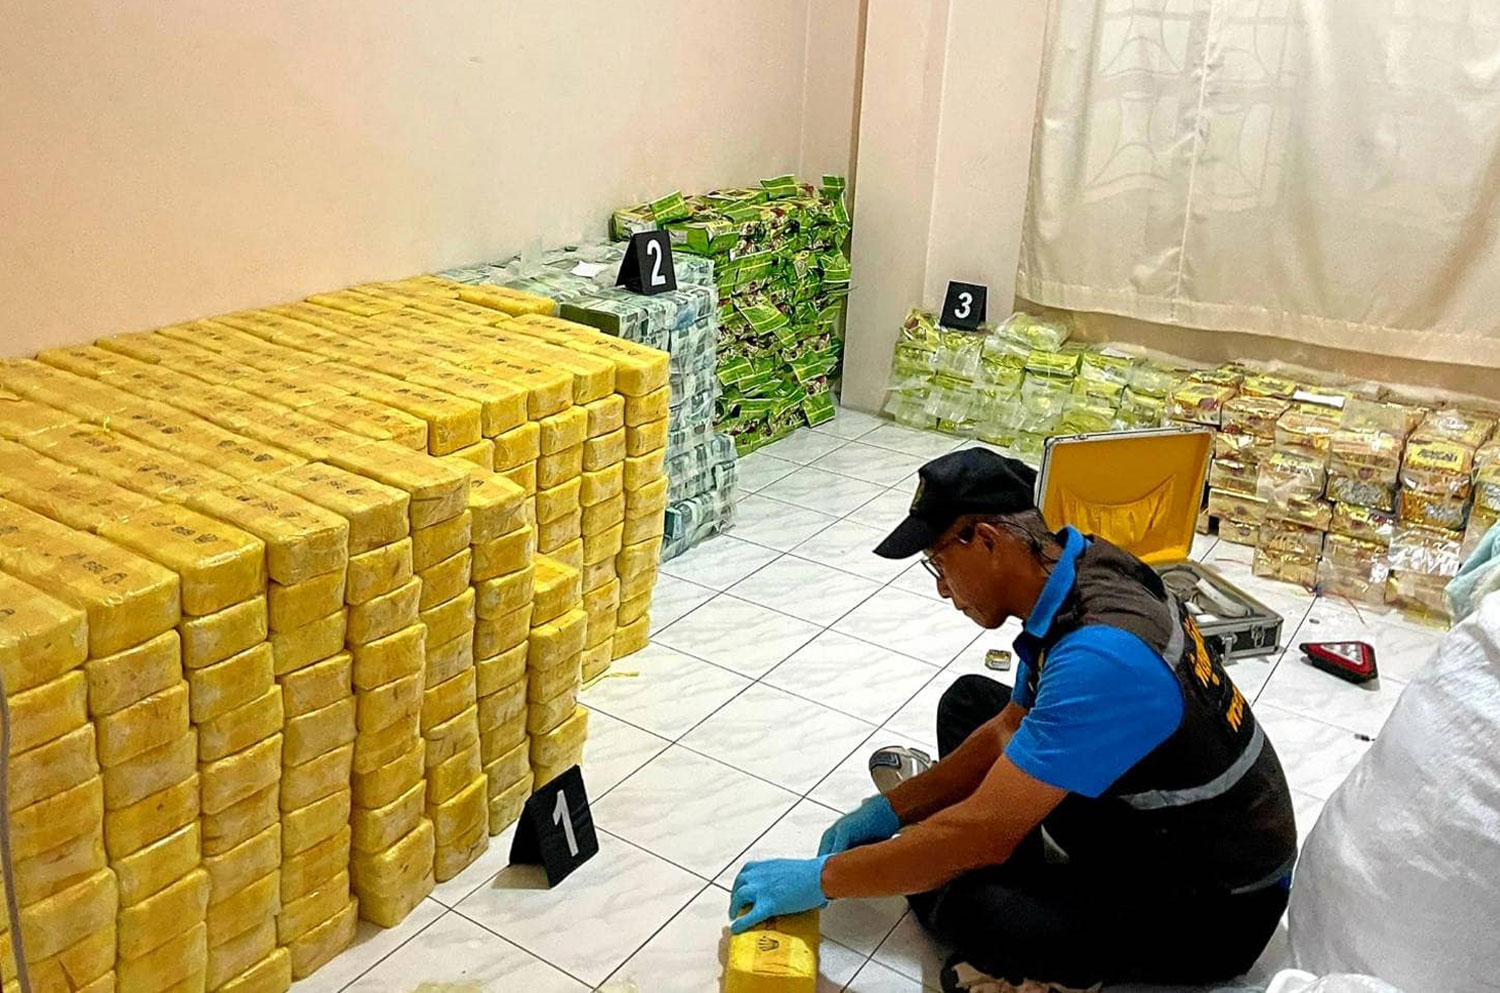 A Narcotics Suppression Bureau officer examines a package of speed pills following a raid on a house in Bang Pa-in district of Ayutthaya on Friday night where over 7 million speed pills and other drugs were seized and seven people caught. (Photo: Sunthorn Pongpao)